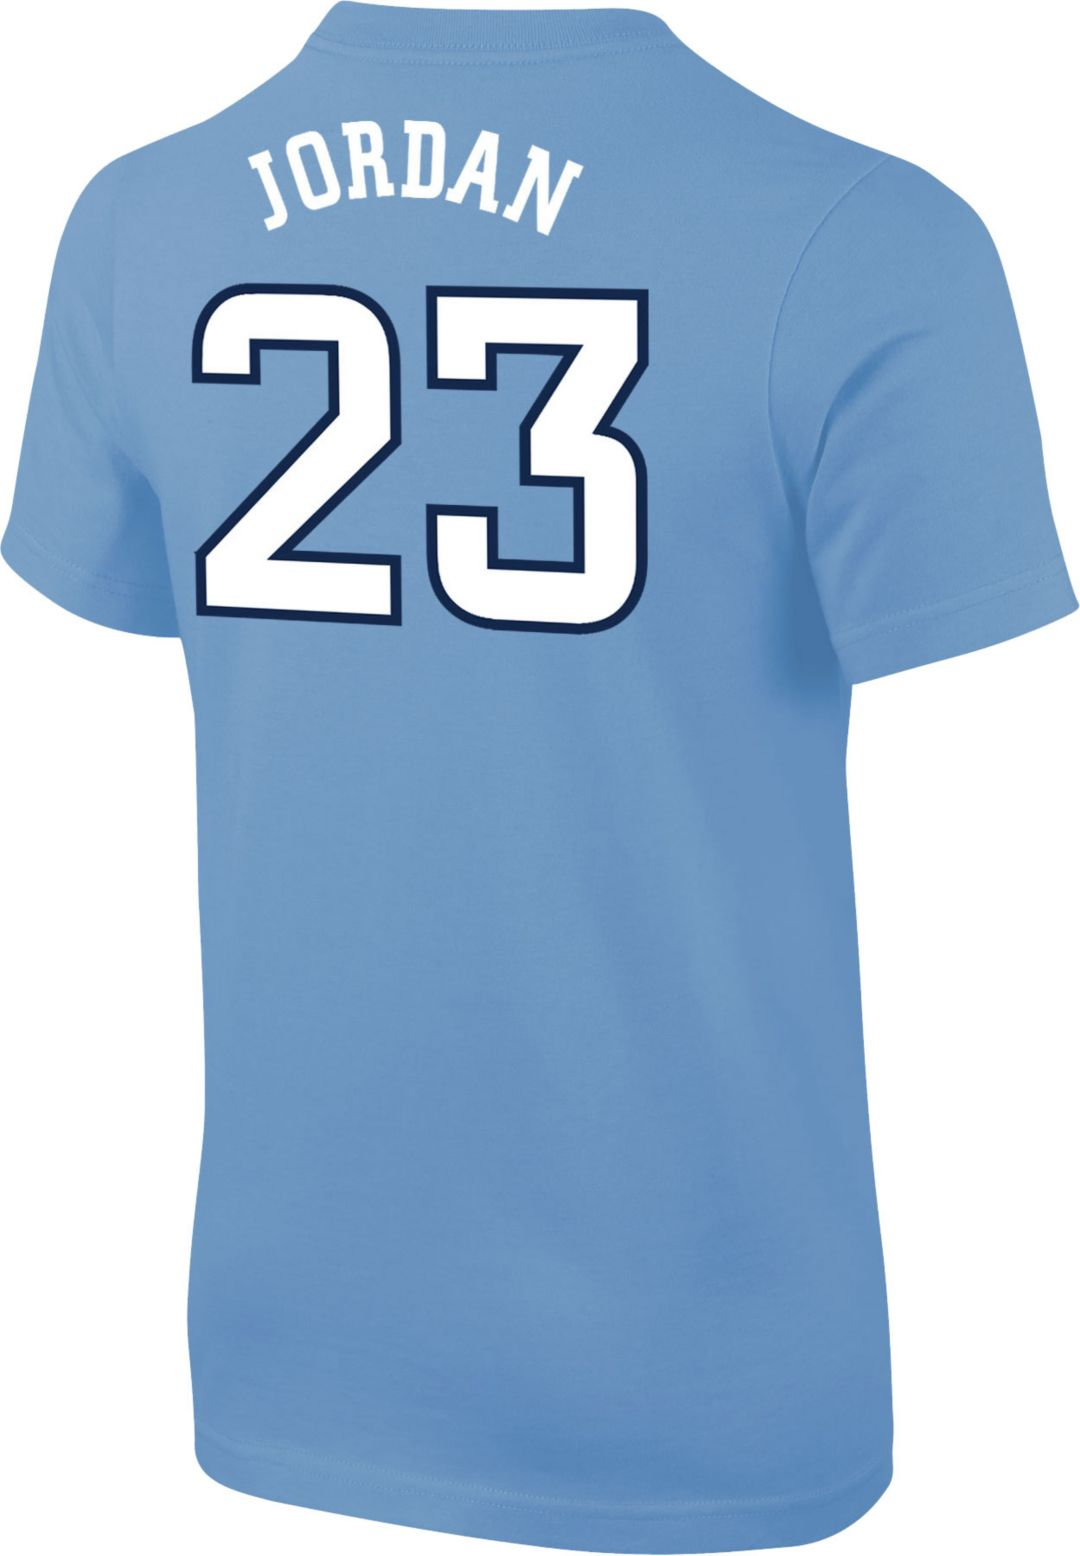 b36eea989c0 Jordan Youth North Carolina Tar Heels Michael Jordan #23 Carolina Blue  Future Star Replica Basketball Jersey T-Shirt. noImageFound. Previous. 1.  2. 3